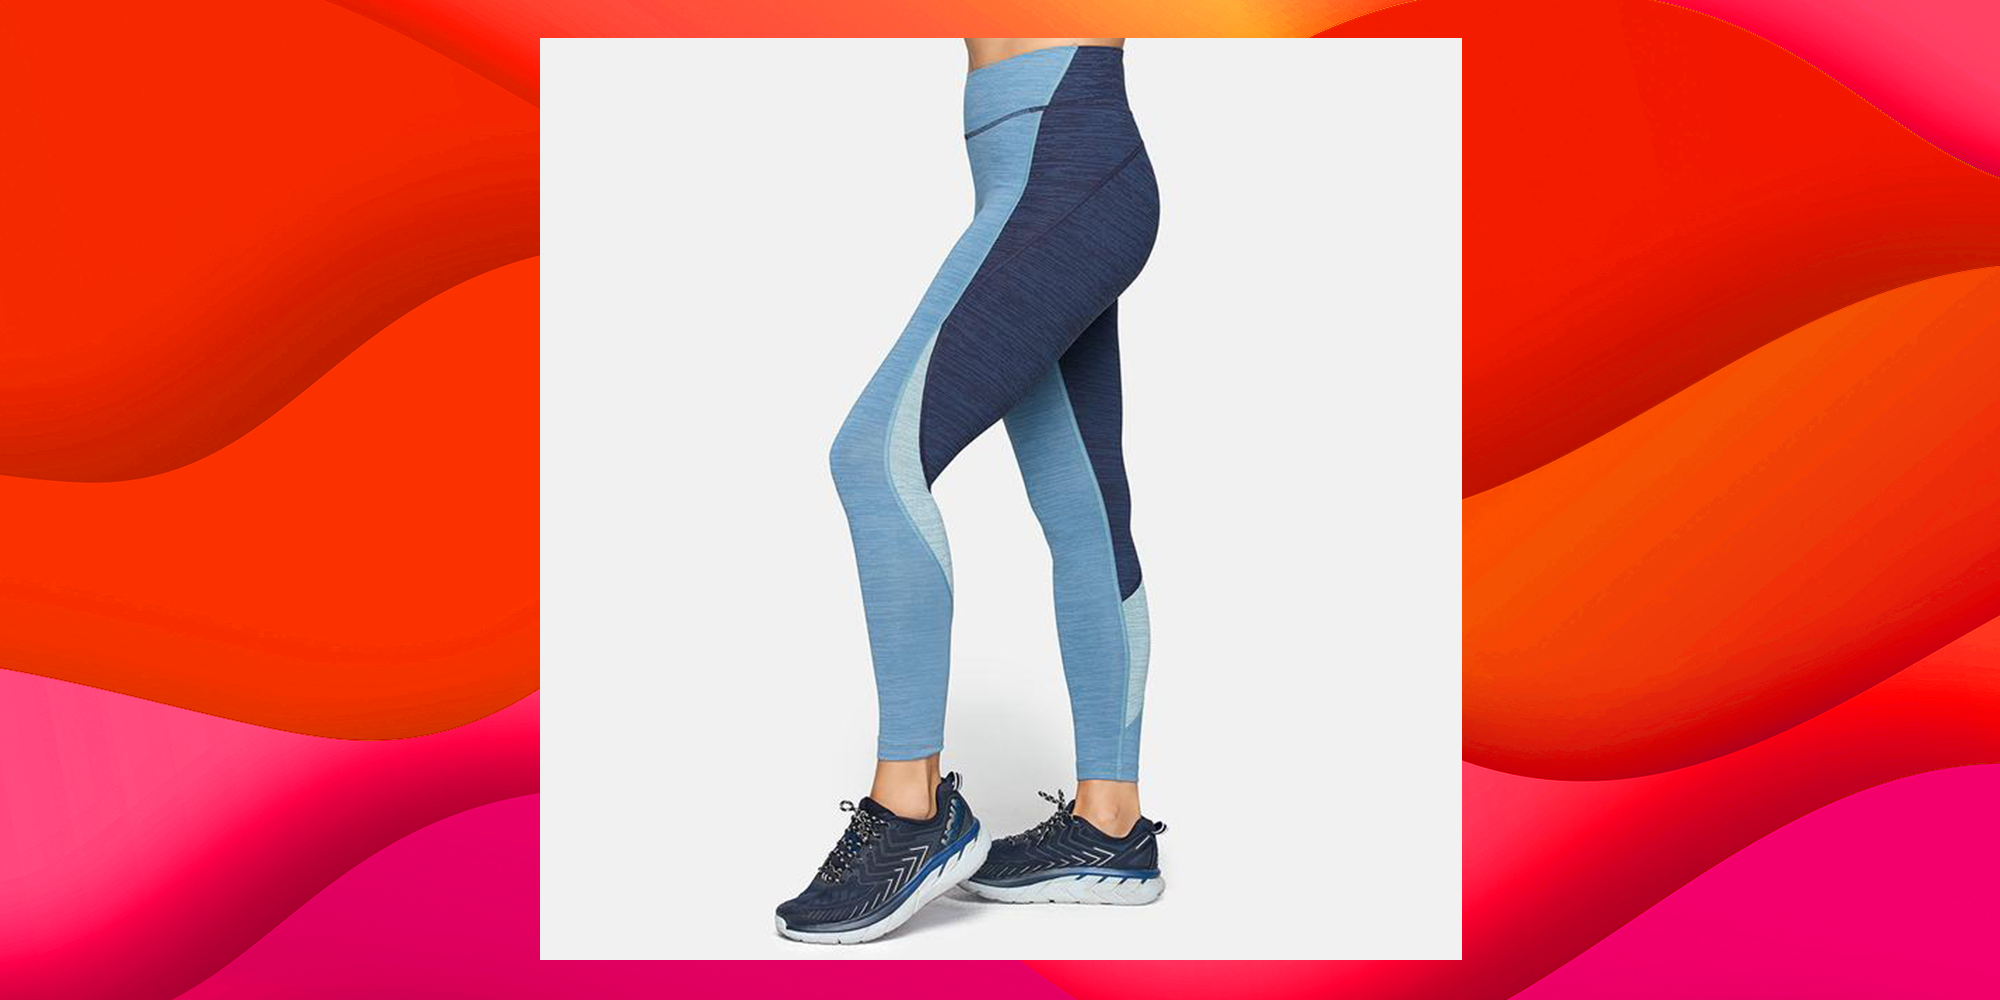 060c35e9be Best Leggings With Pockets - Workout Leggings With Pockets